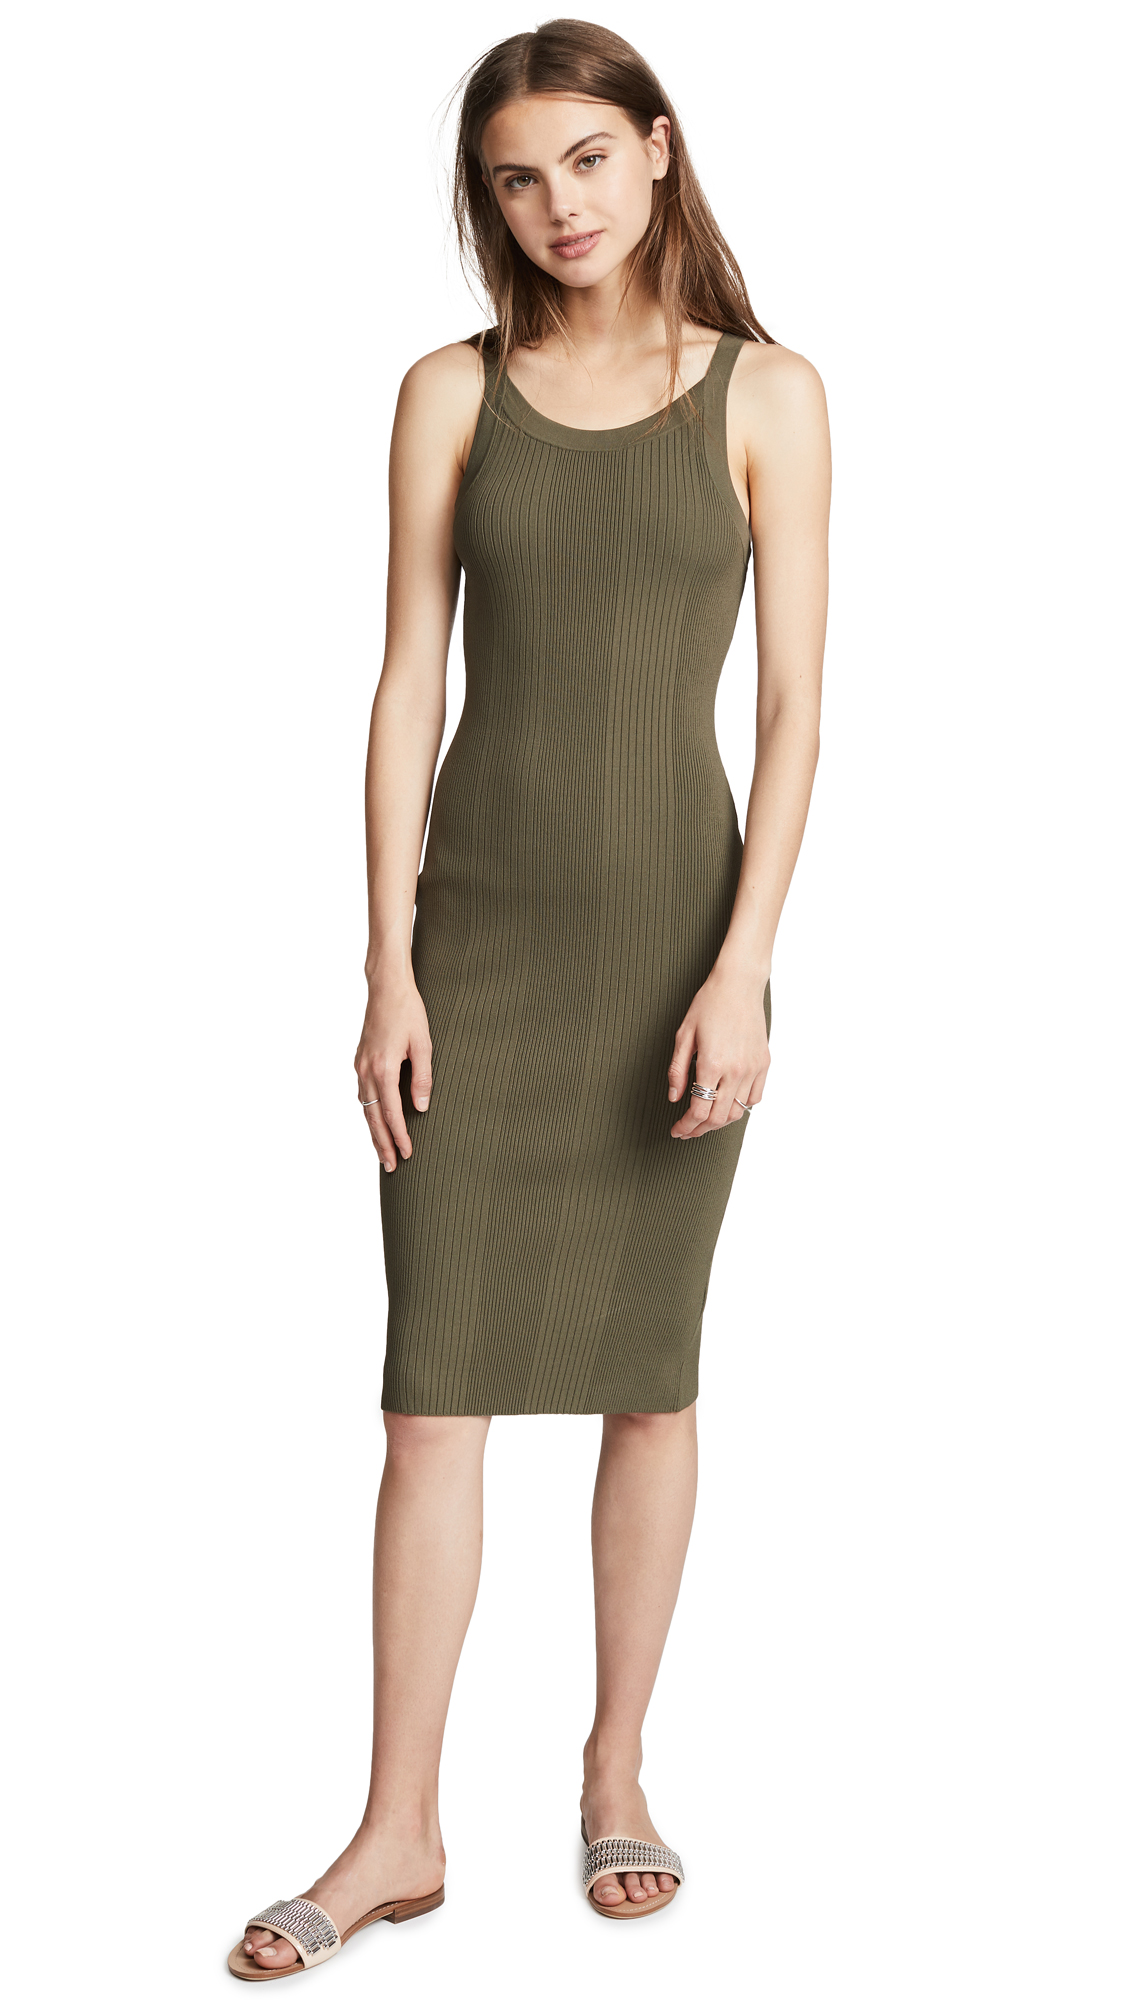 T by Alexander Wang Visible Straps Dress